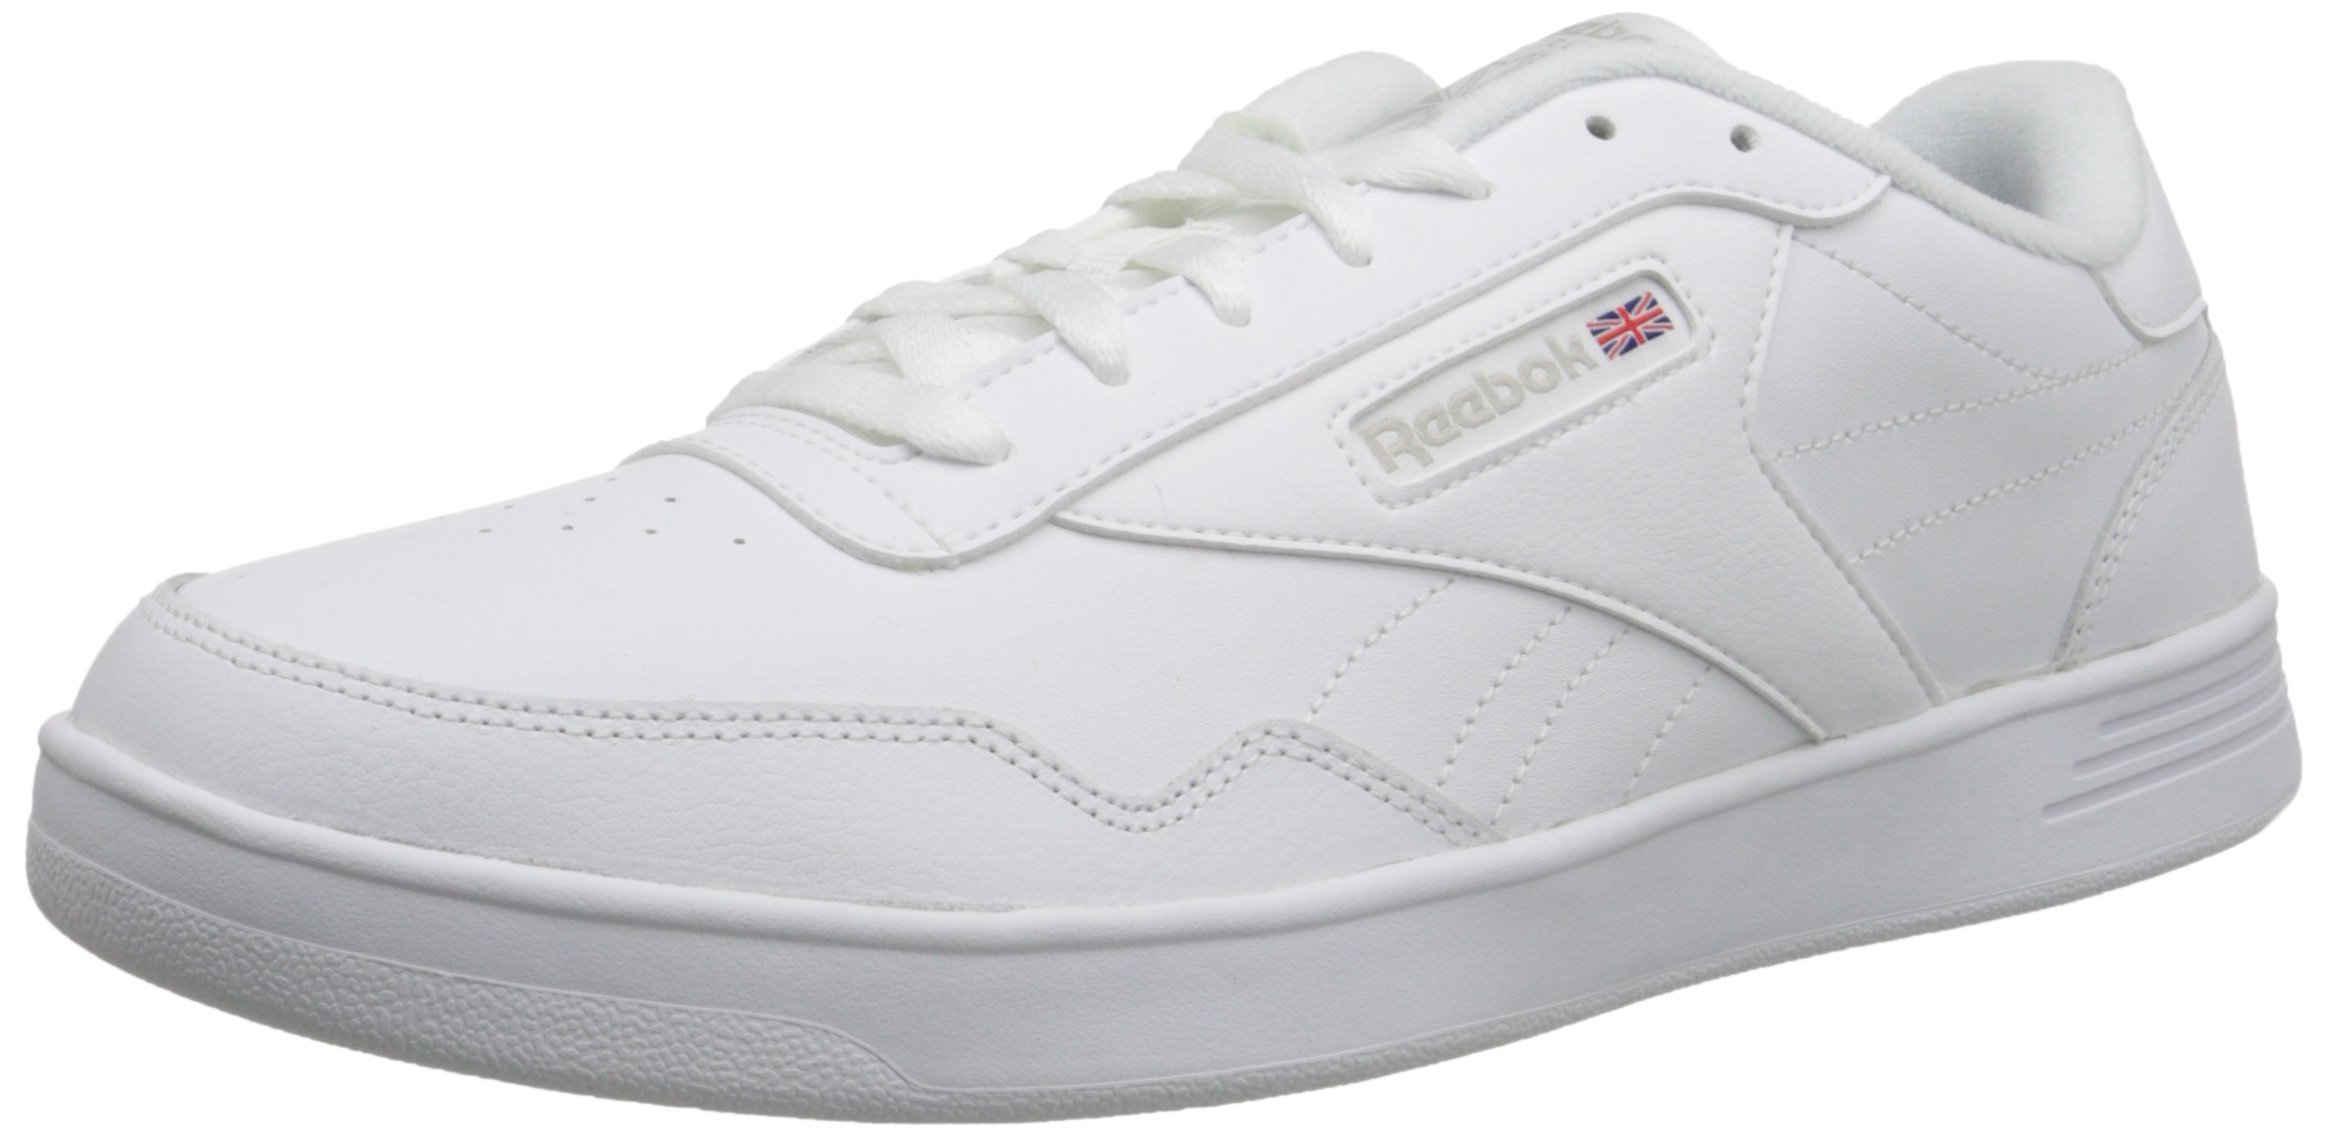 Reebok Men's Club Memt Fashion Sneaker, White/Steel, 11.5 4E US